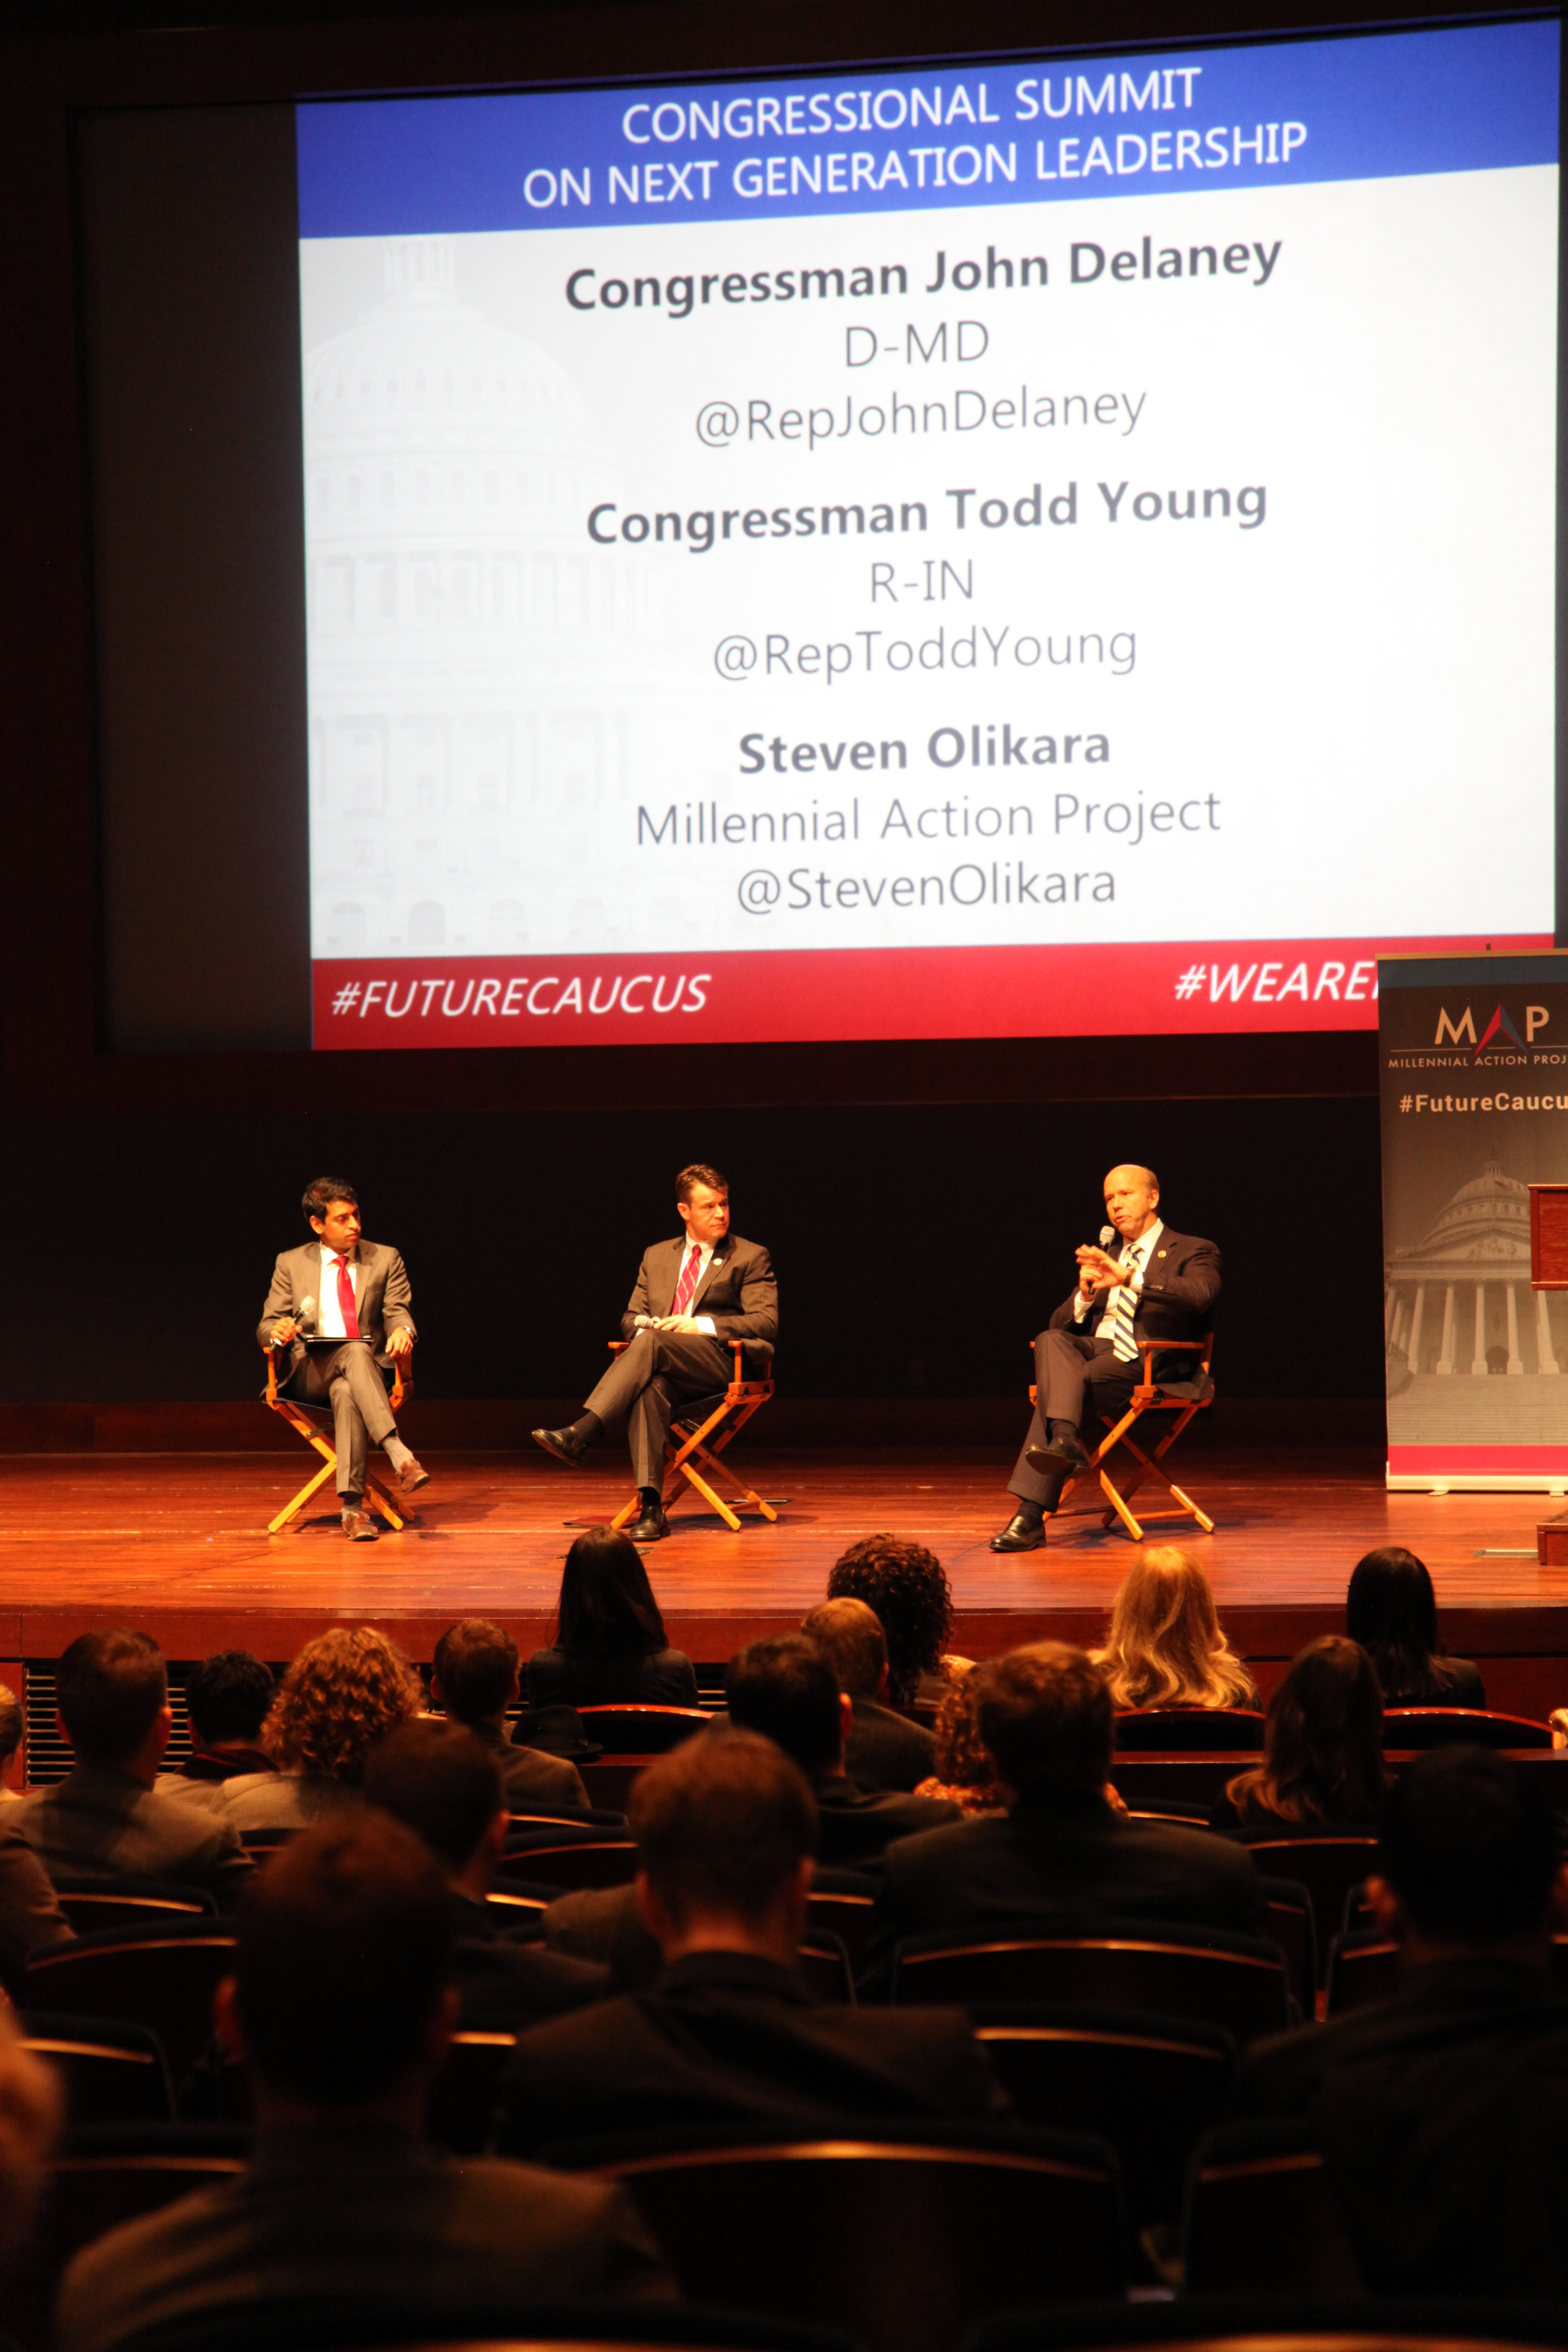 Reps. Young and Delaney at the 2014 Congressional Summit on Next Generation Leadership.